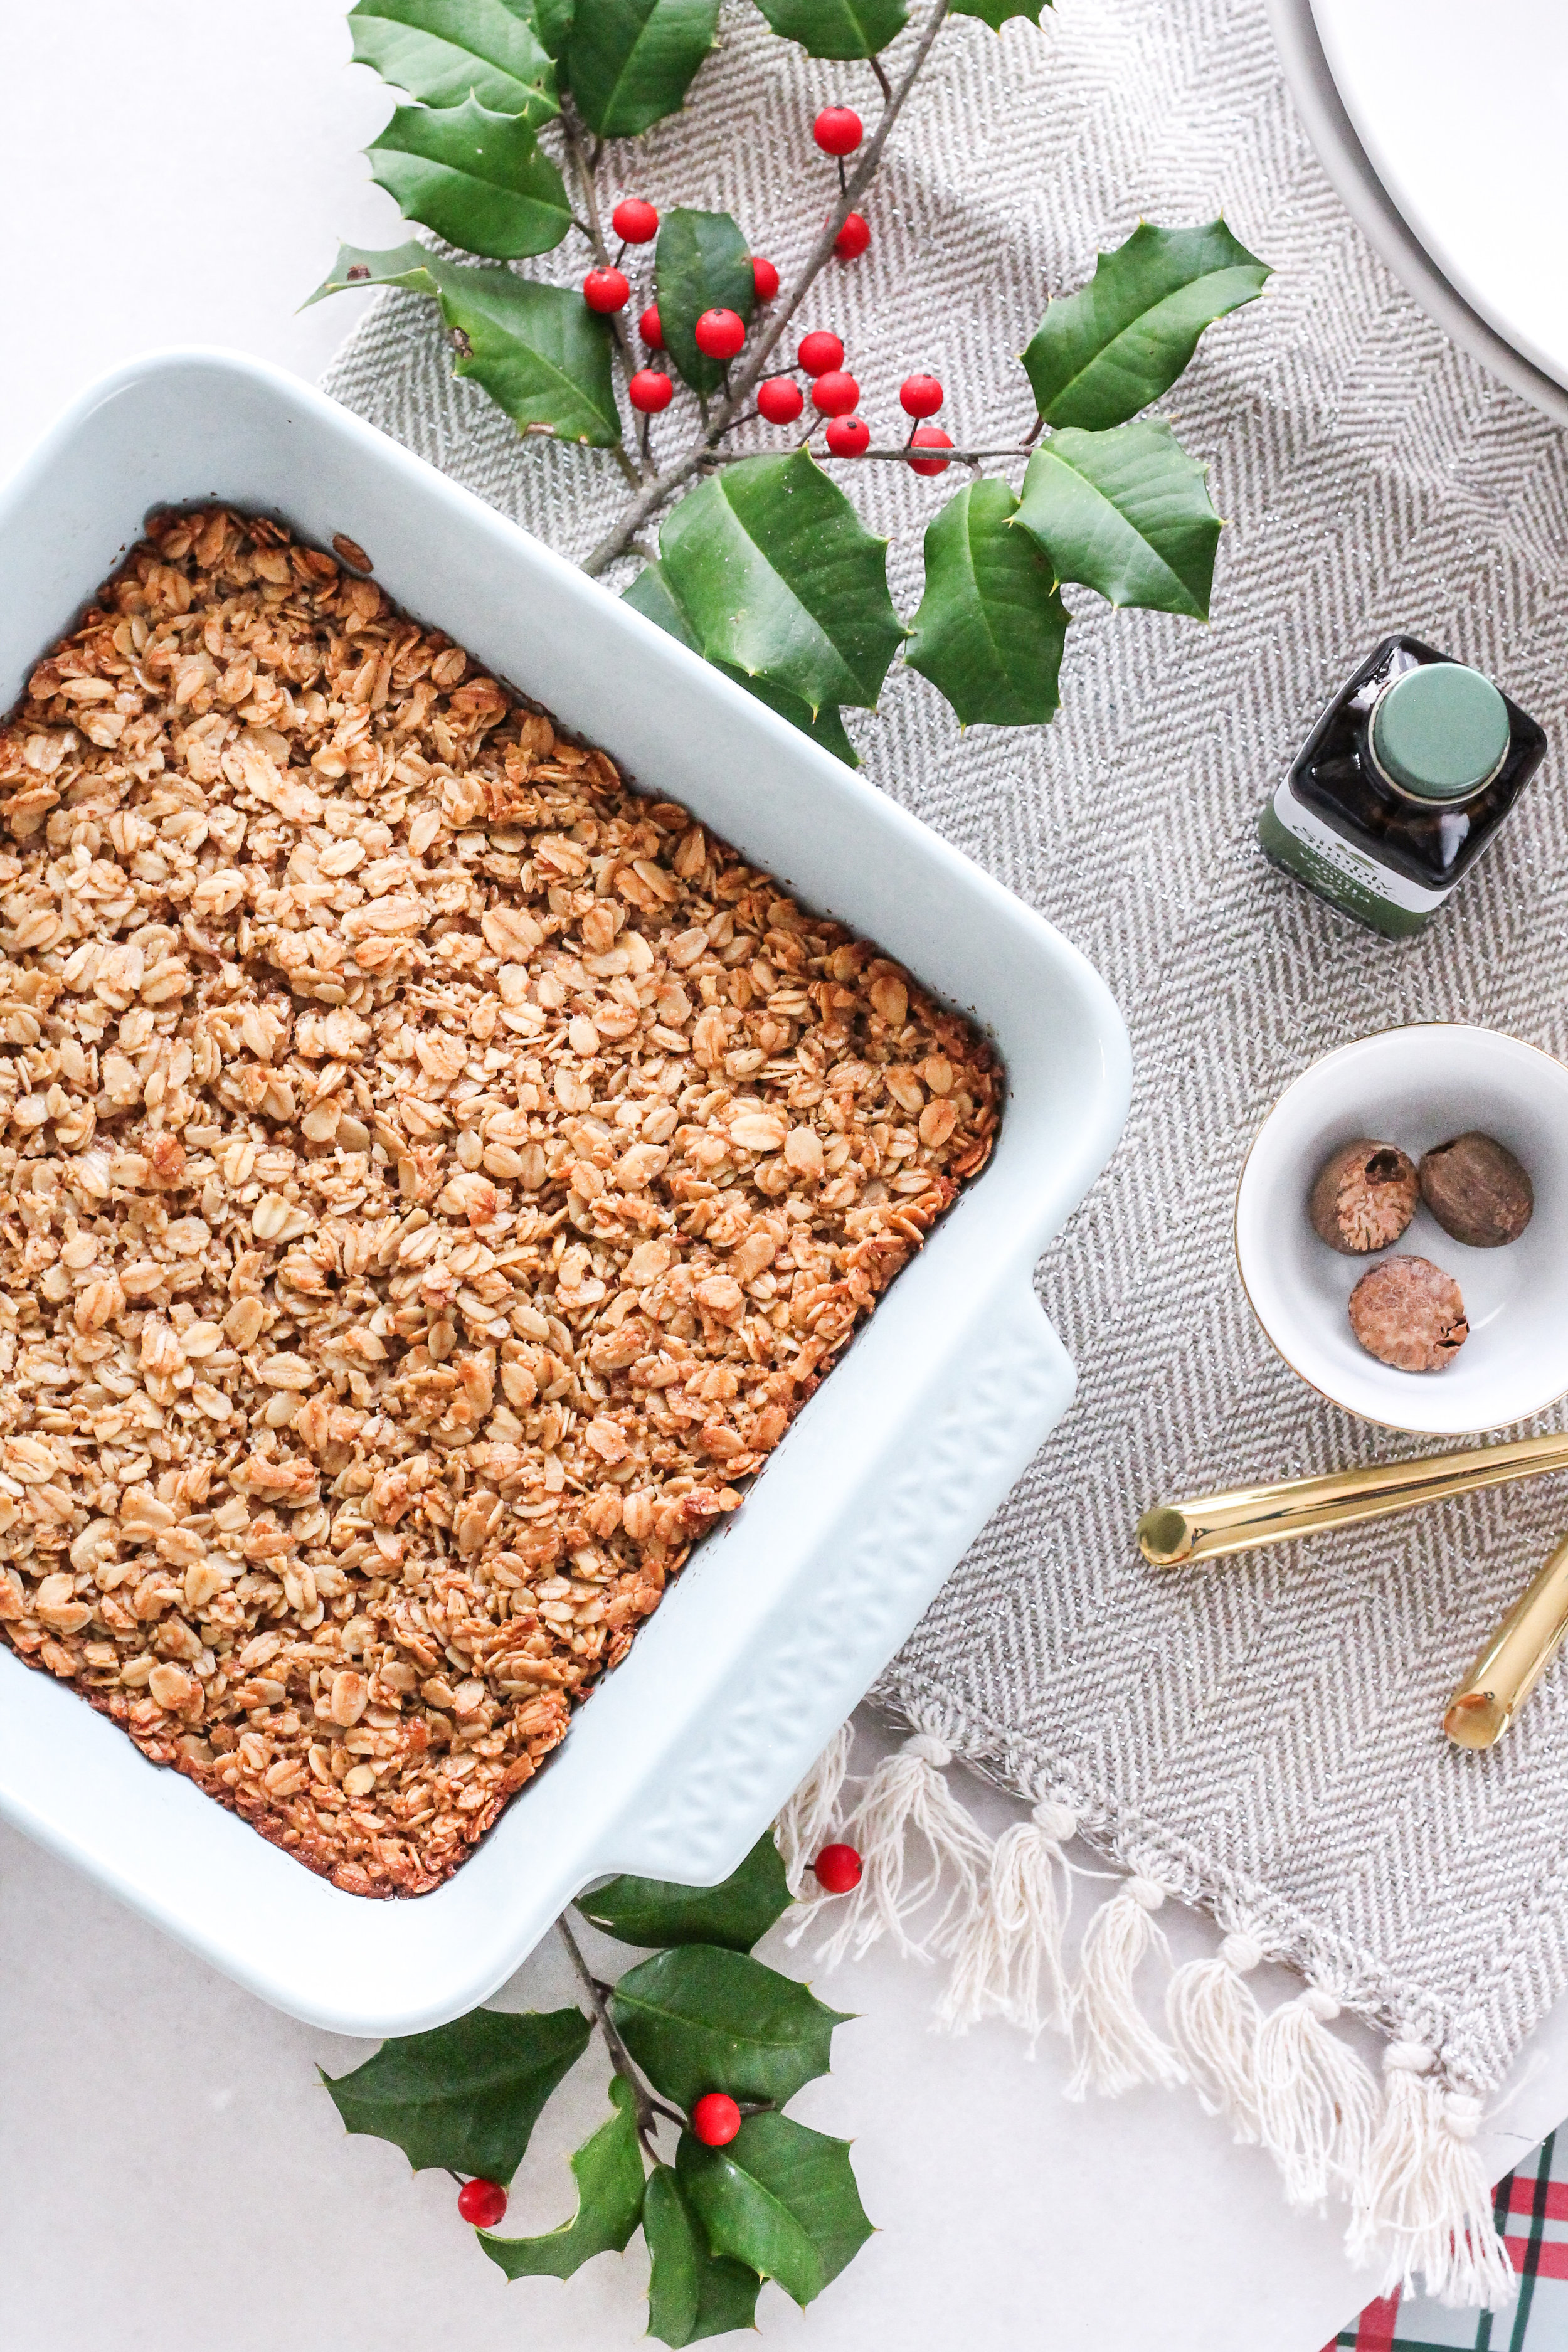 BAKED OATMEAL WITH EGGNOG AND FRESH RASPBERRIES MAKES THE PERFECT CHRISTMAS MORNING BREAKFAST!  FIND THE SUPER SIMPLE RECIPE ON WWW.PEDANTICFOODIE.COM